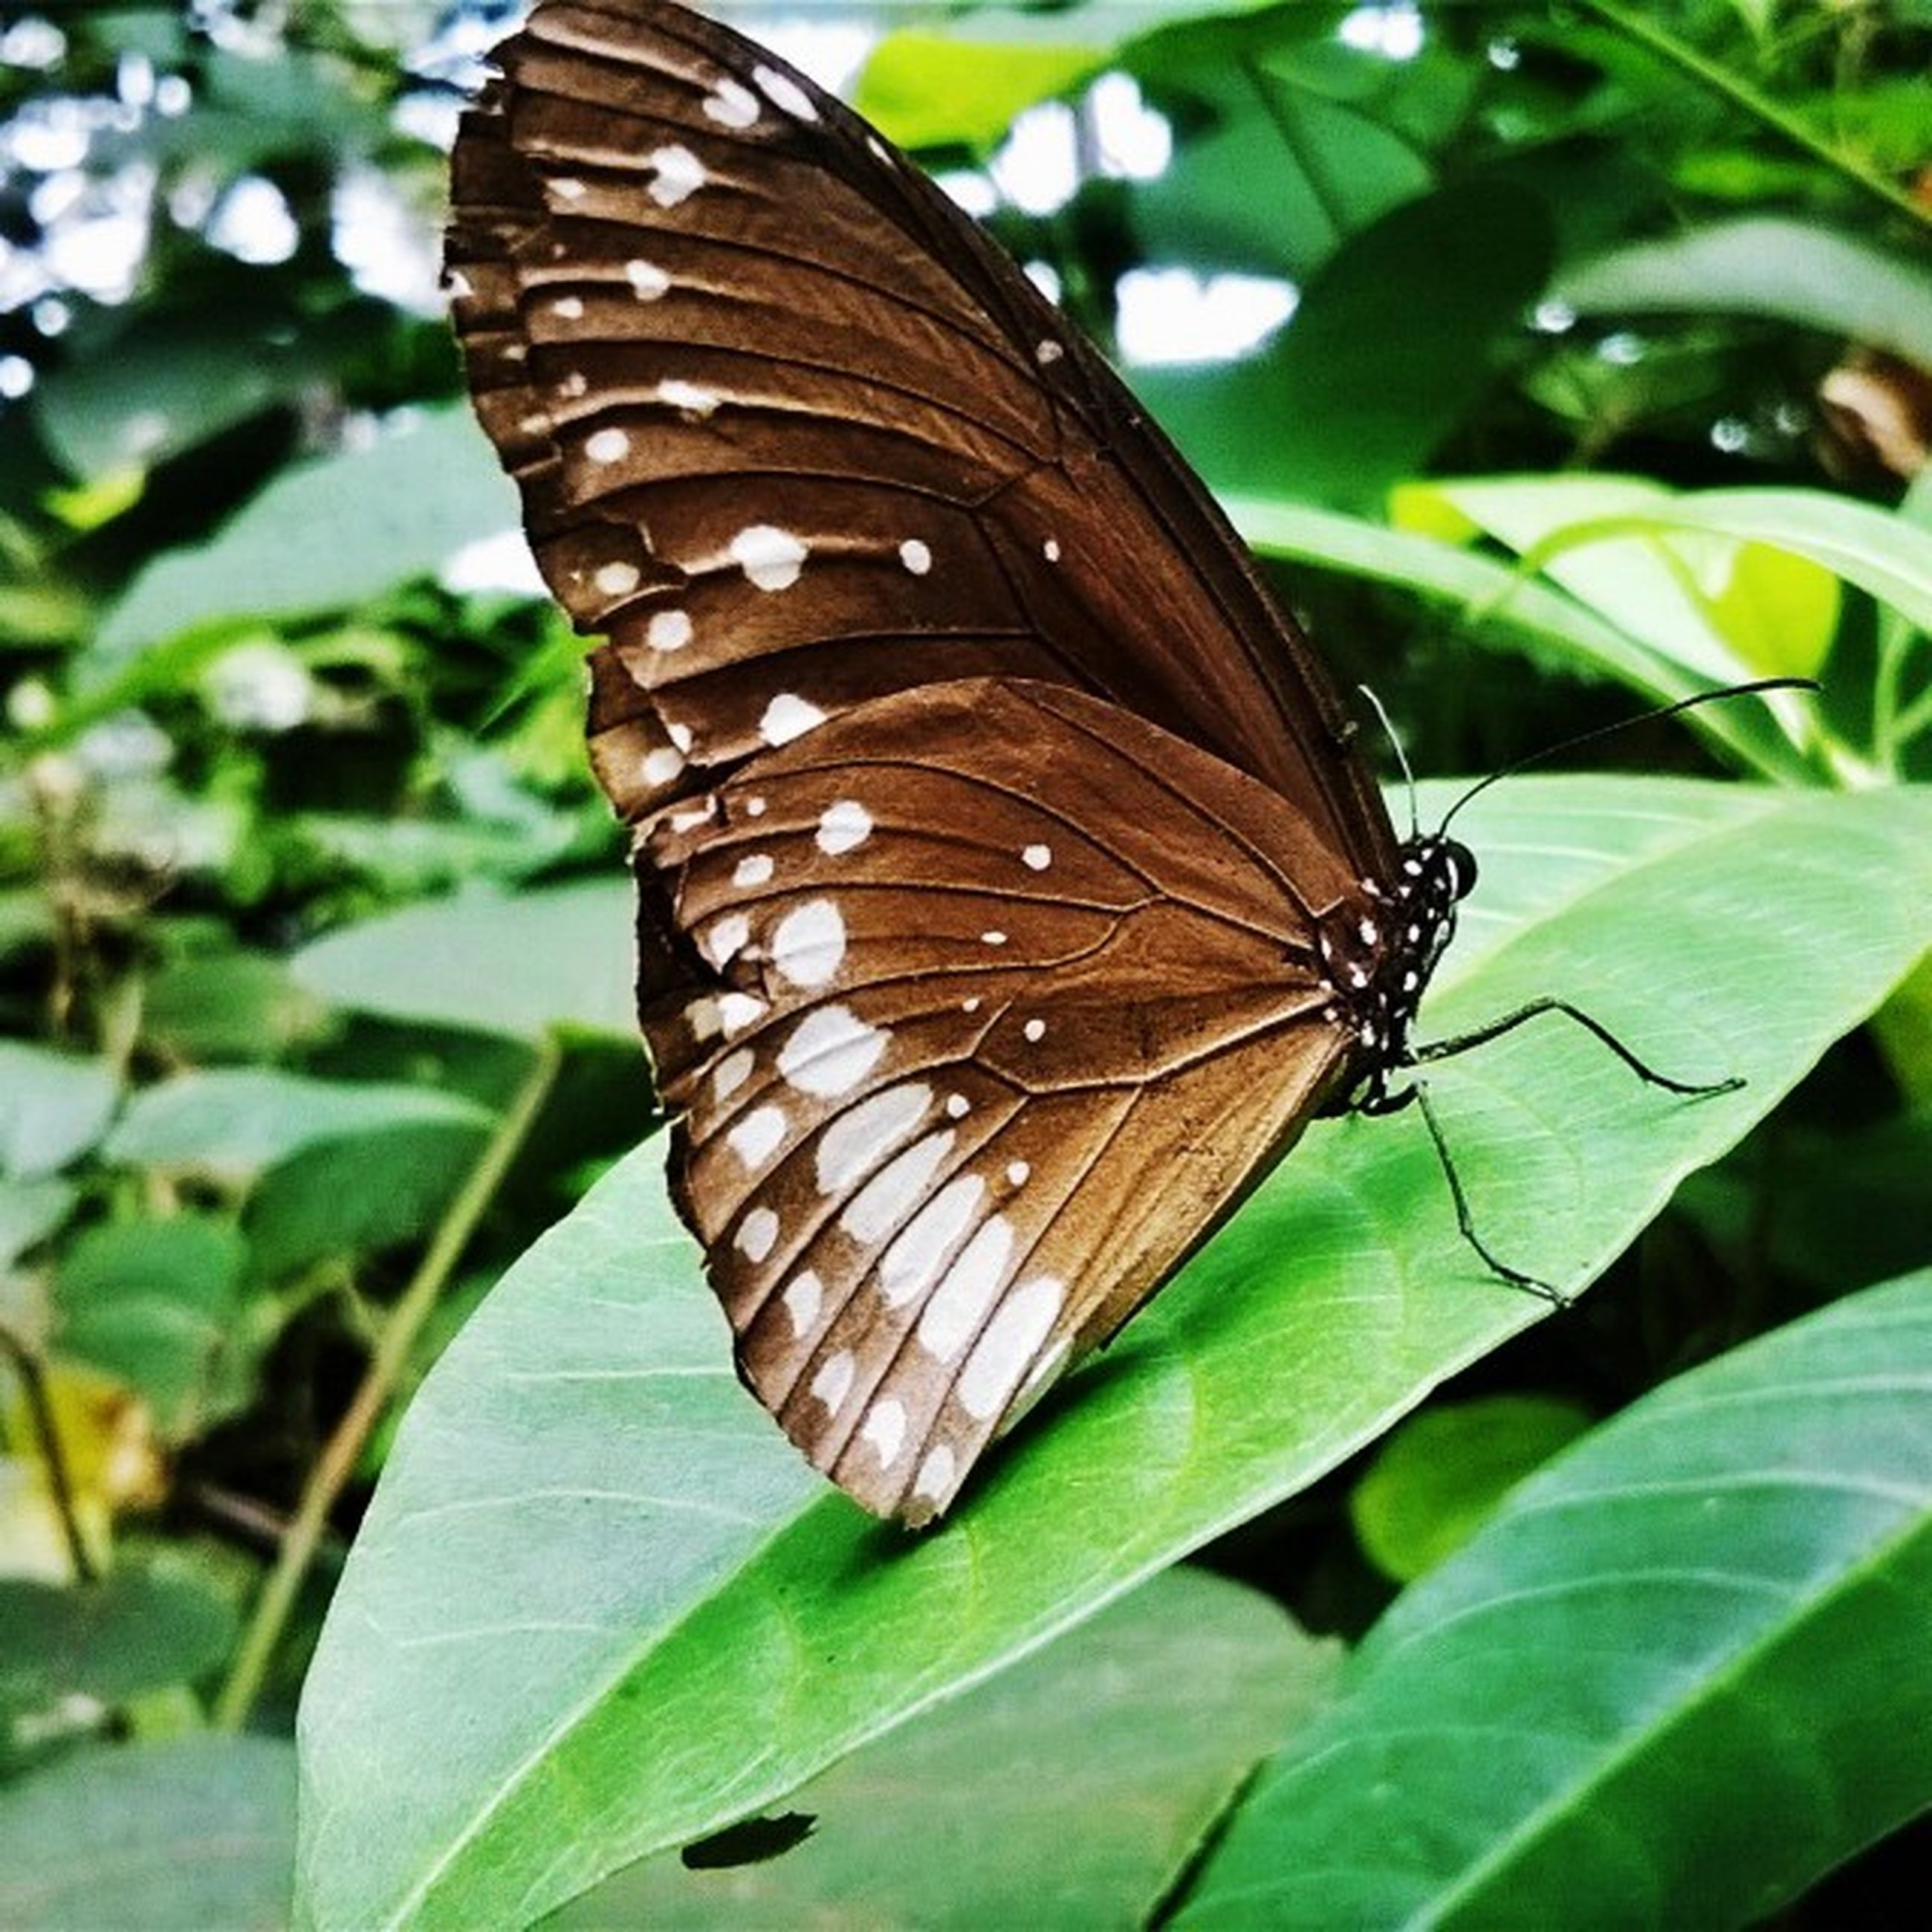 animals in the wild, animal themes, one animal, insect, wildlife, butterfly - insect, leaf, butterfly, close-up, animal wing, animal markings, focus on foreground, natural pattern, animal antenna, perching, nature, plant, outdoors, zoology, beauty in nature